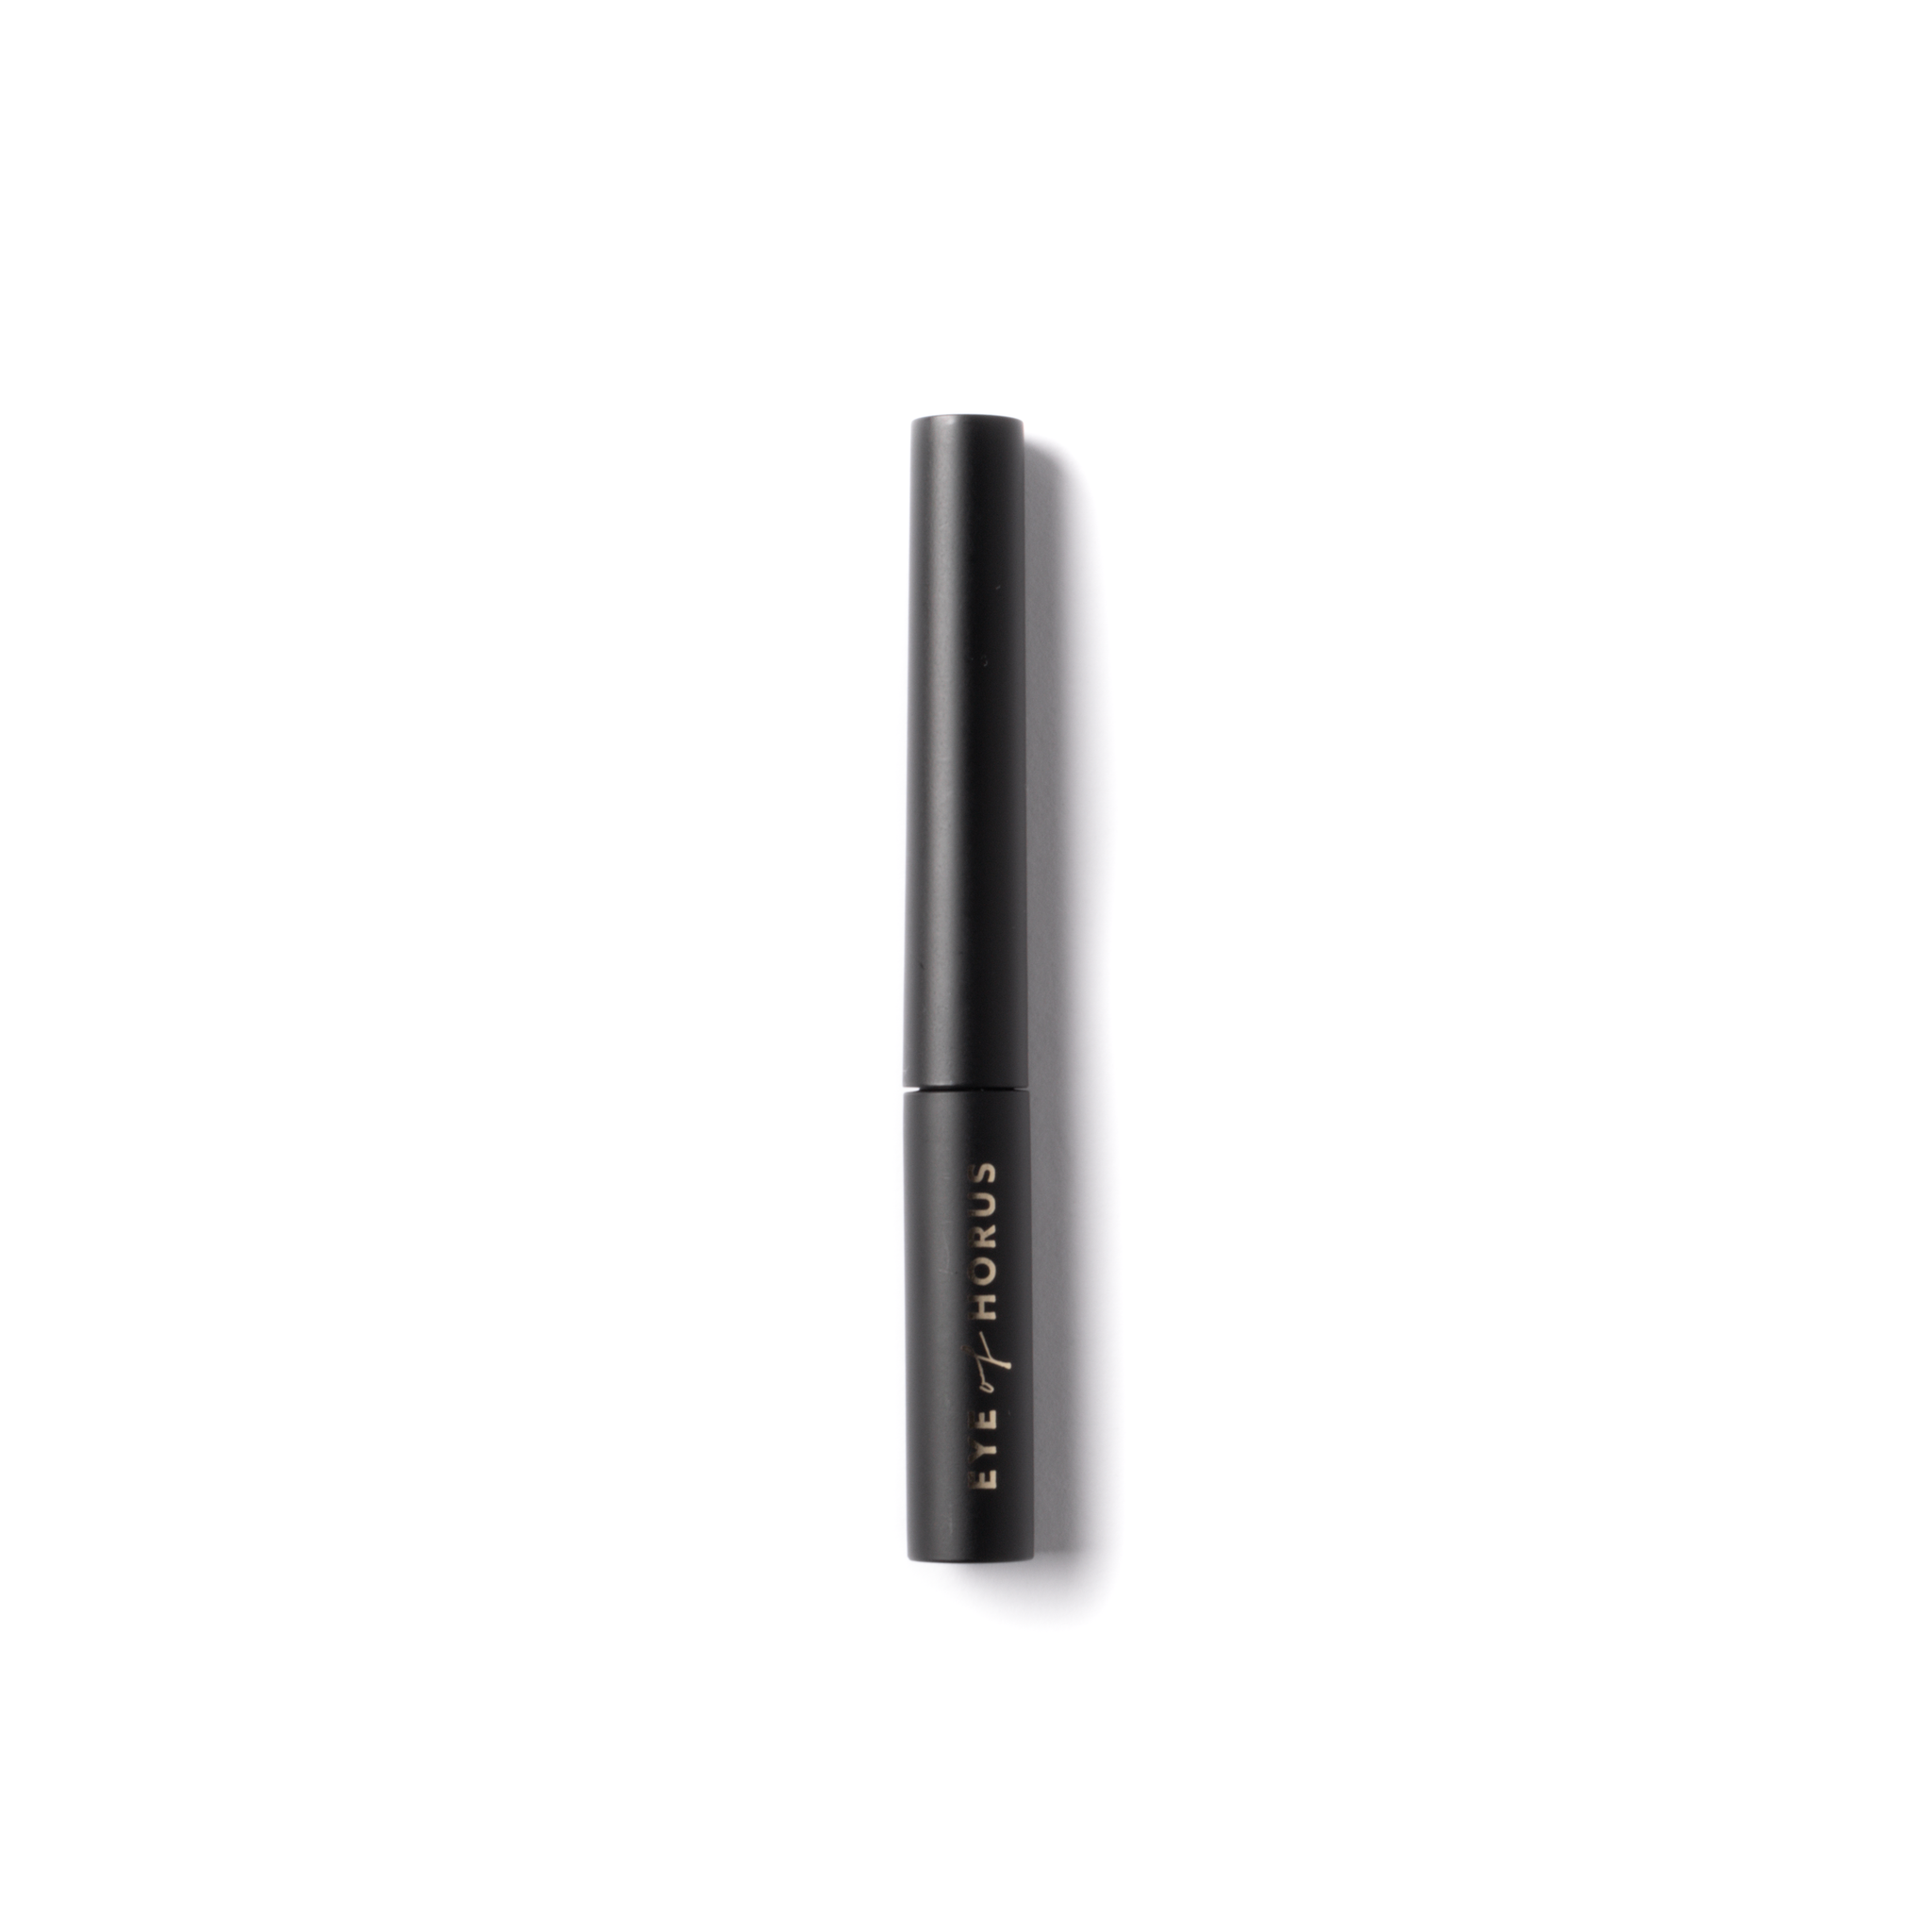 Eye of Horus Universal Brow Lash Serum 2.9ml